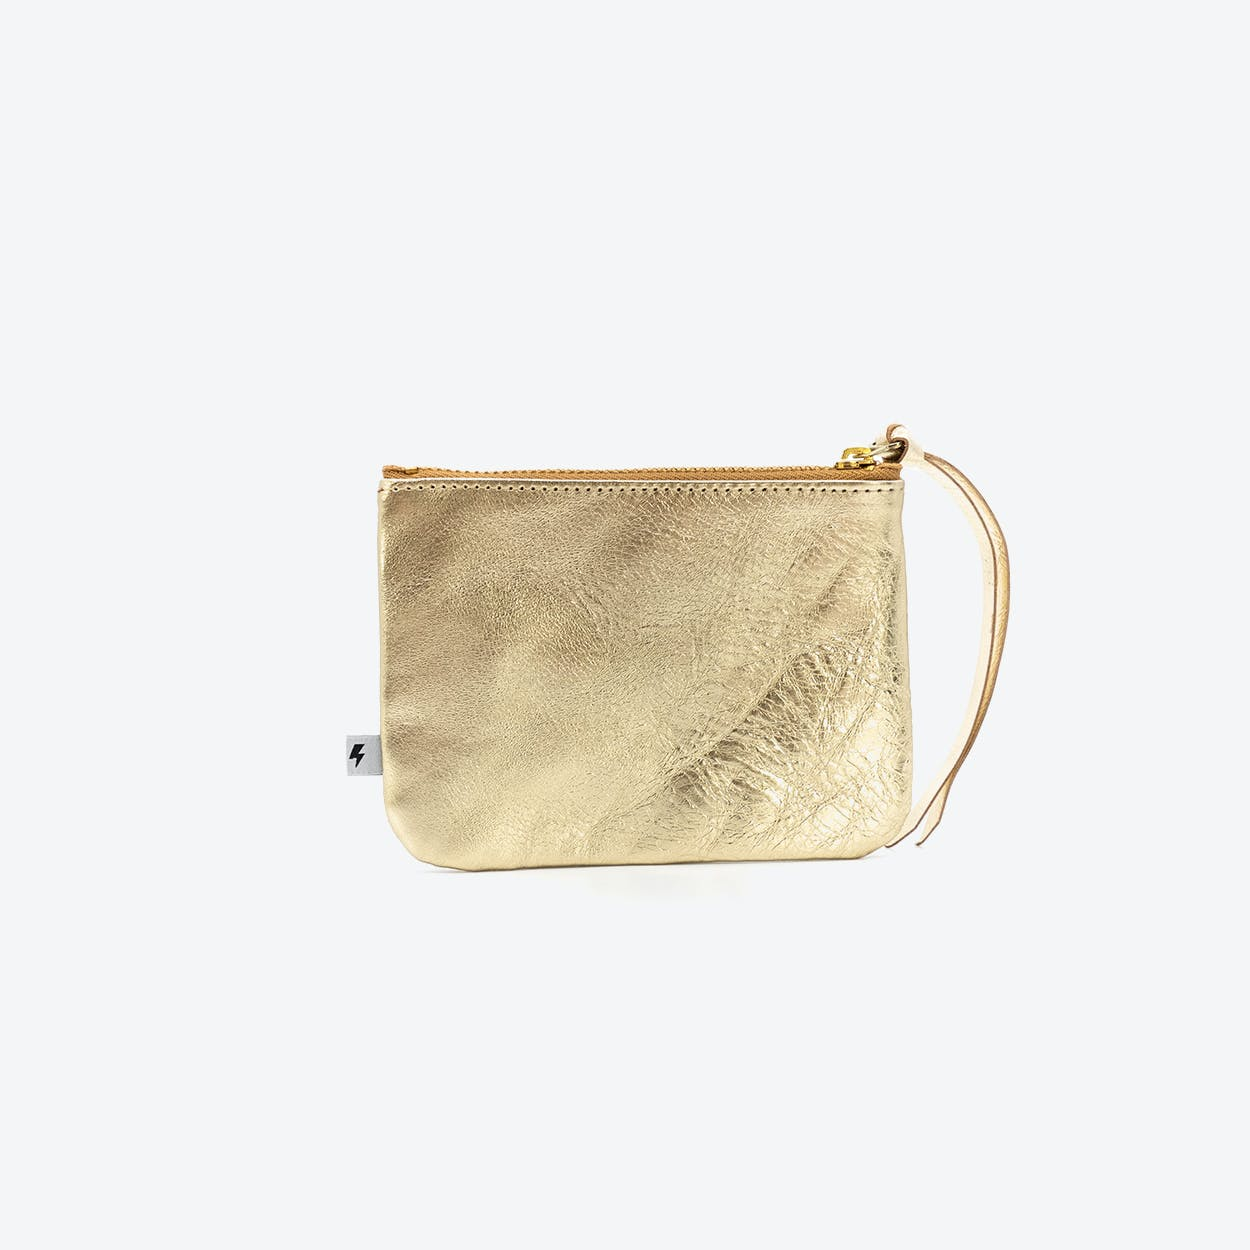 MAX Small Clutch in Gold